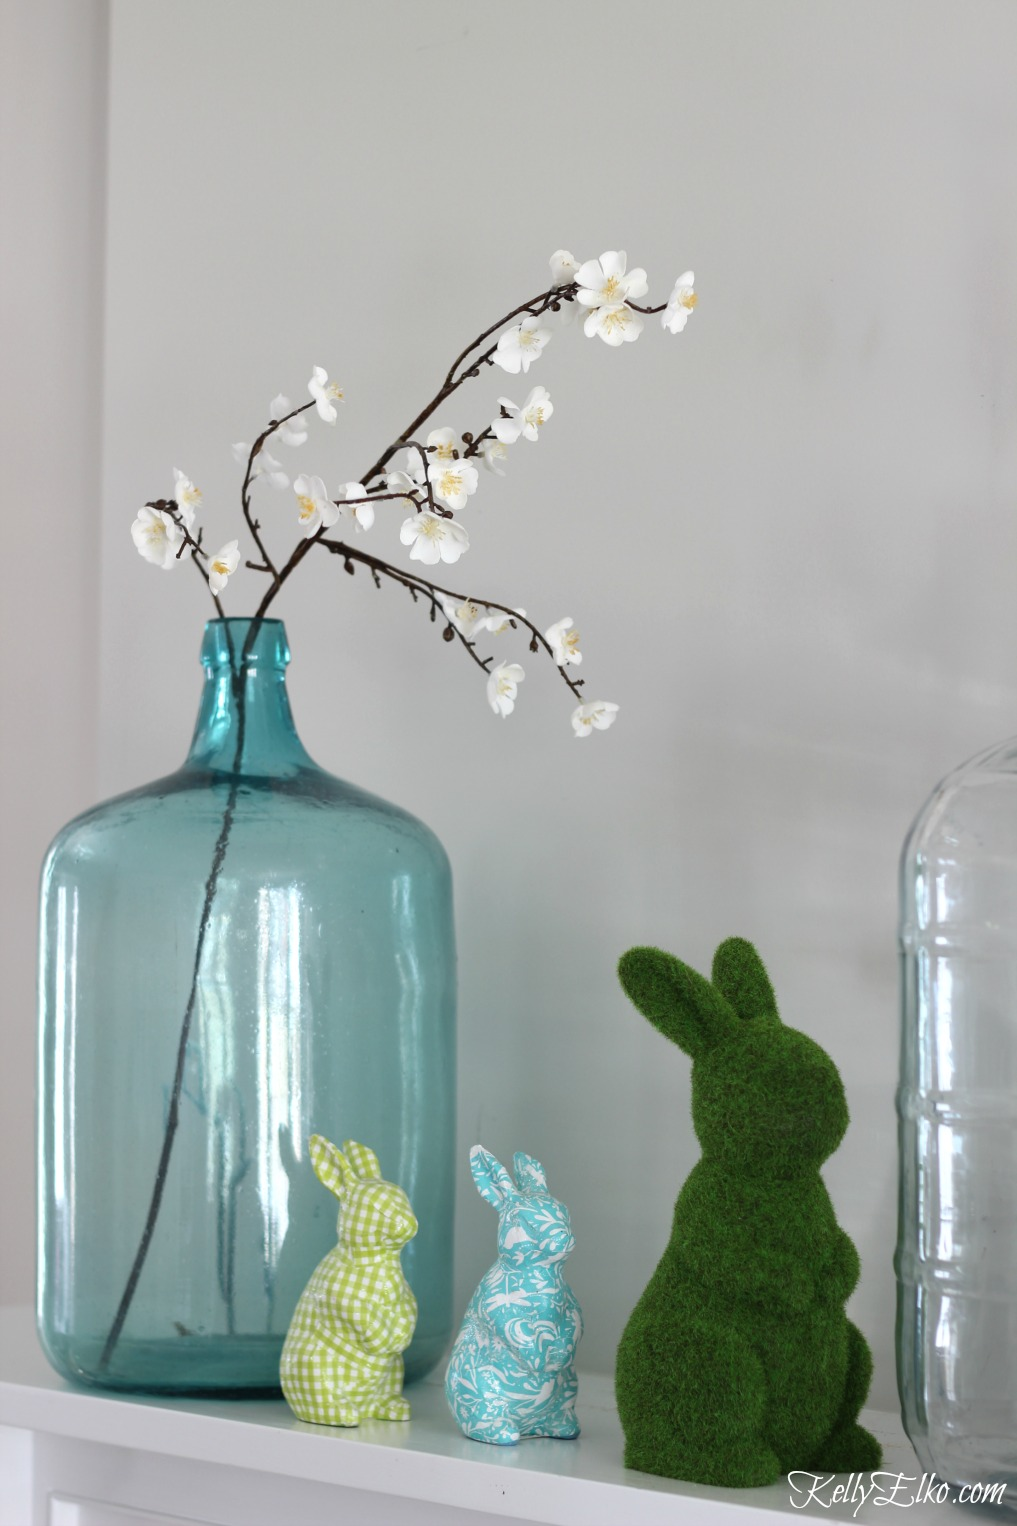 25 Spring Decorating Ideas - love this mantel with vintage glass demijohns and colorful bunnies kellyelko.com #spring #springdecor #homedecor #mantel #springmantel #vintagedecor #easterbunny